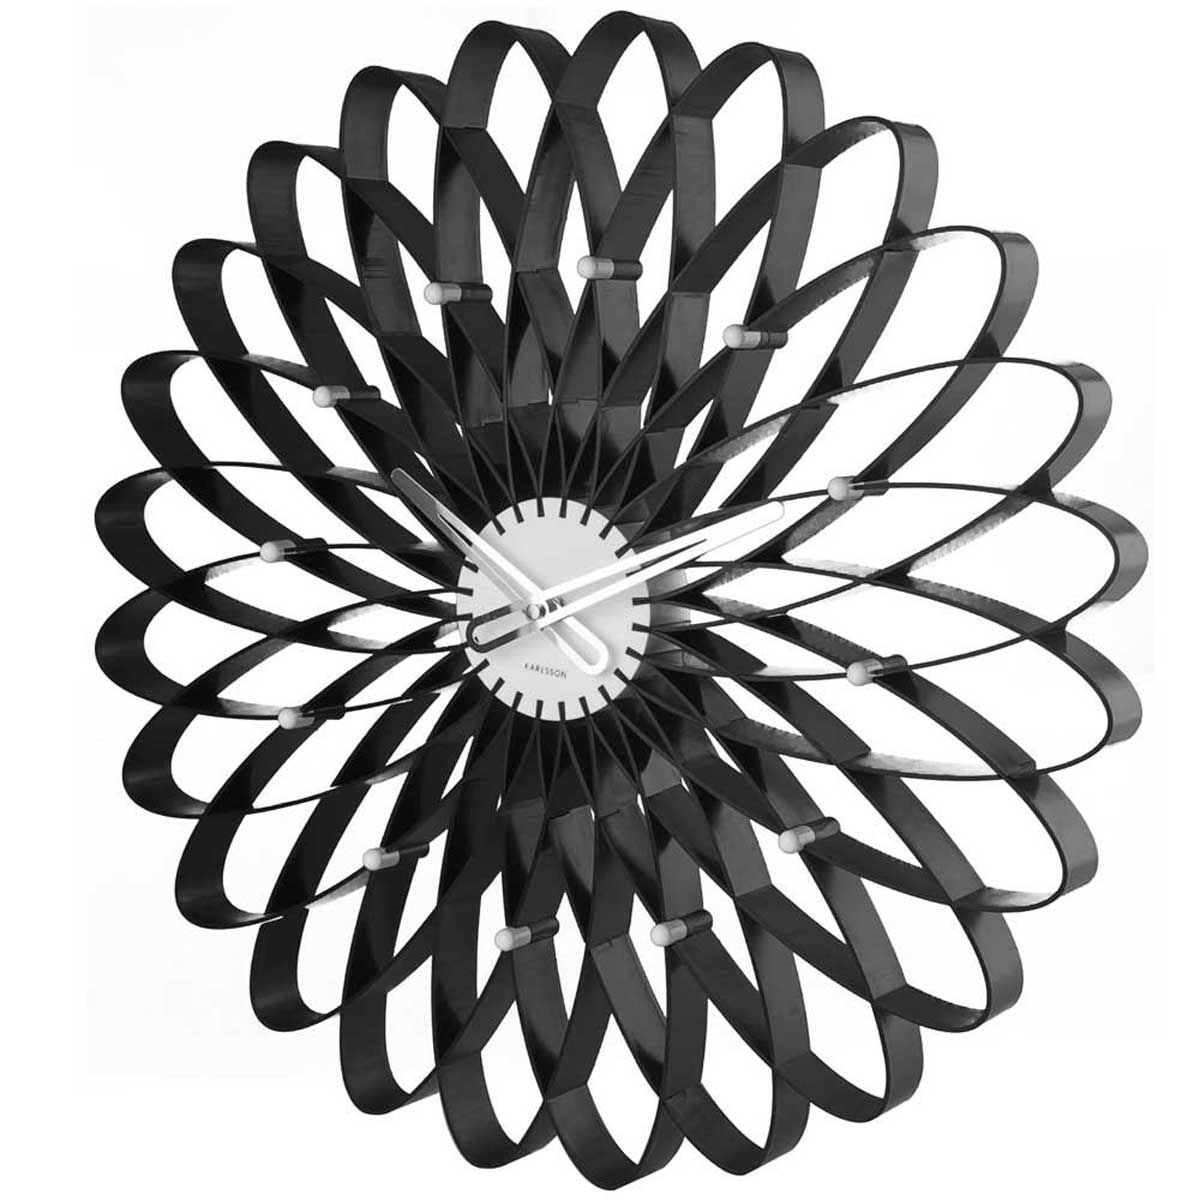 Stunning Design Of The Wall Clocks Ideas With Black Color Ideas And White Color At The Middle For The Bedroom Areas